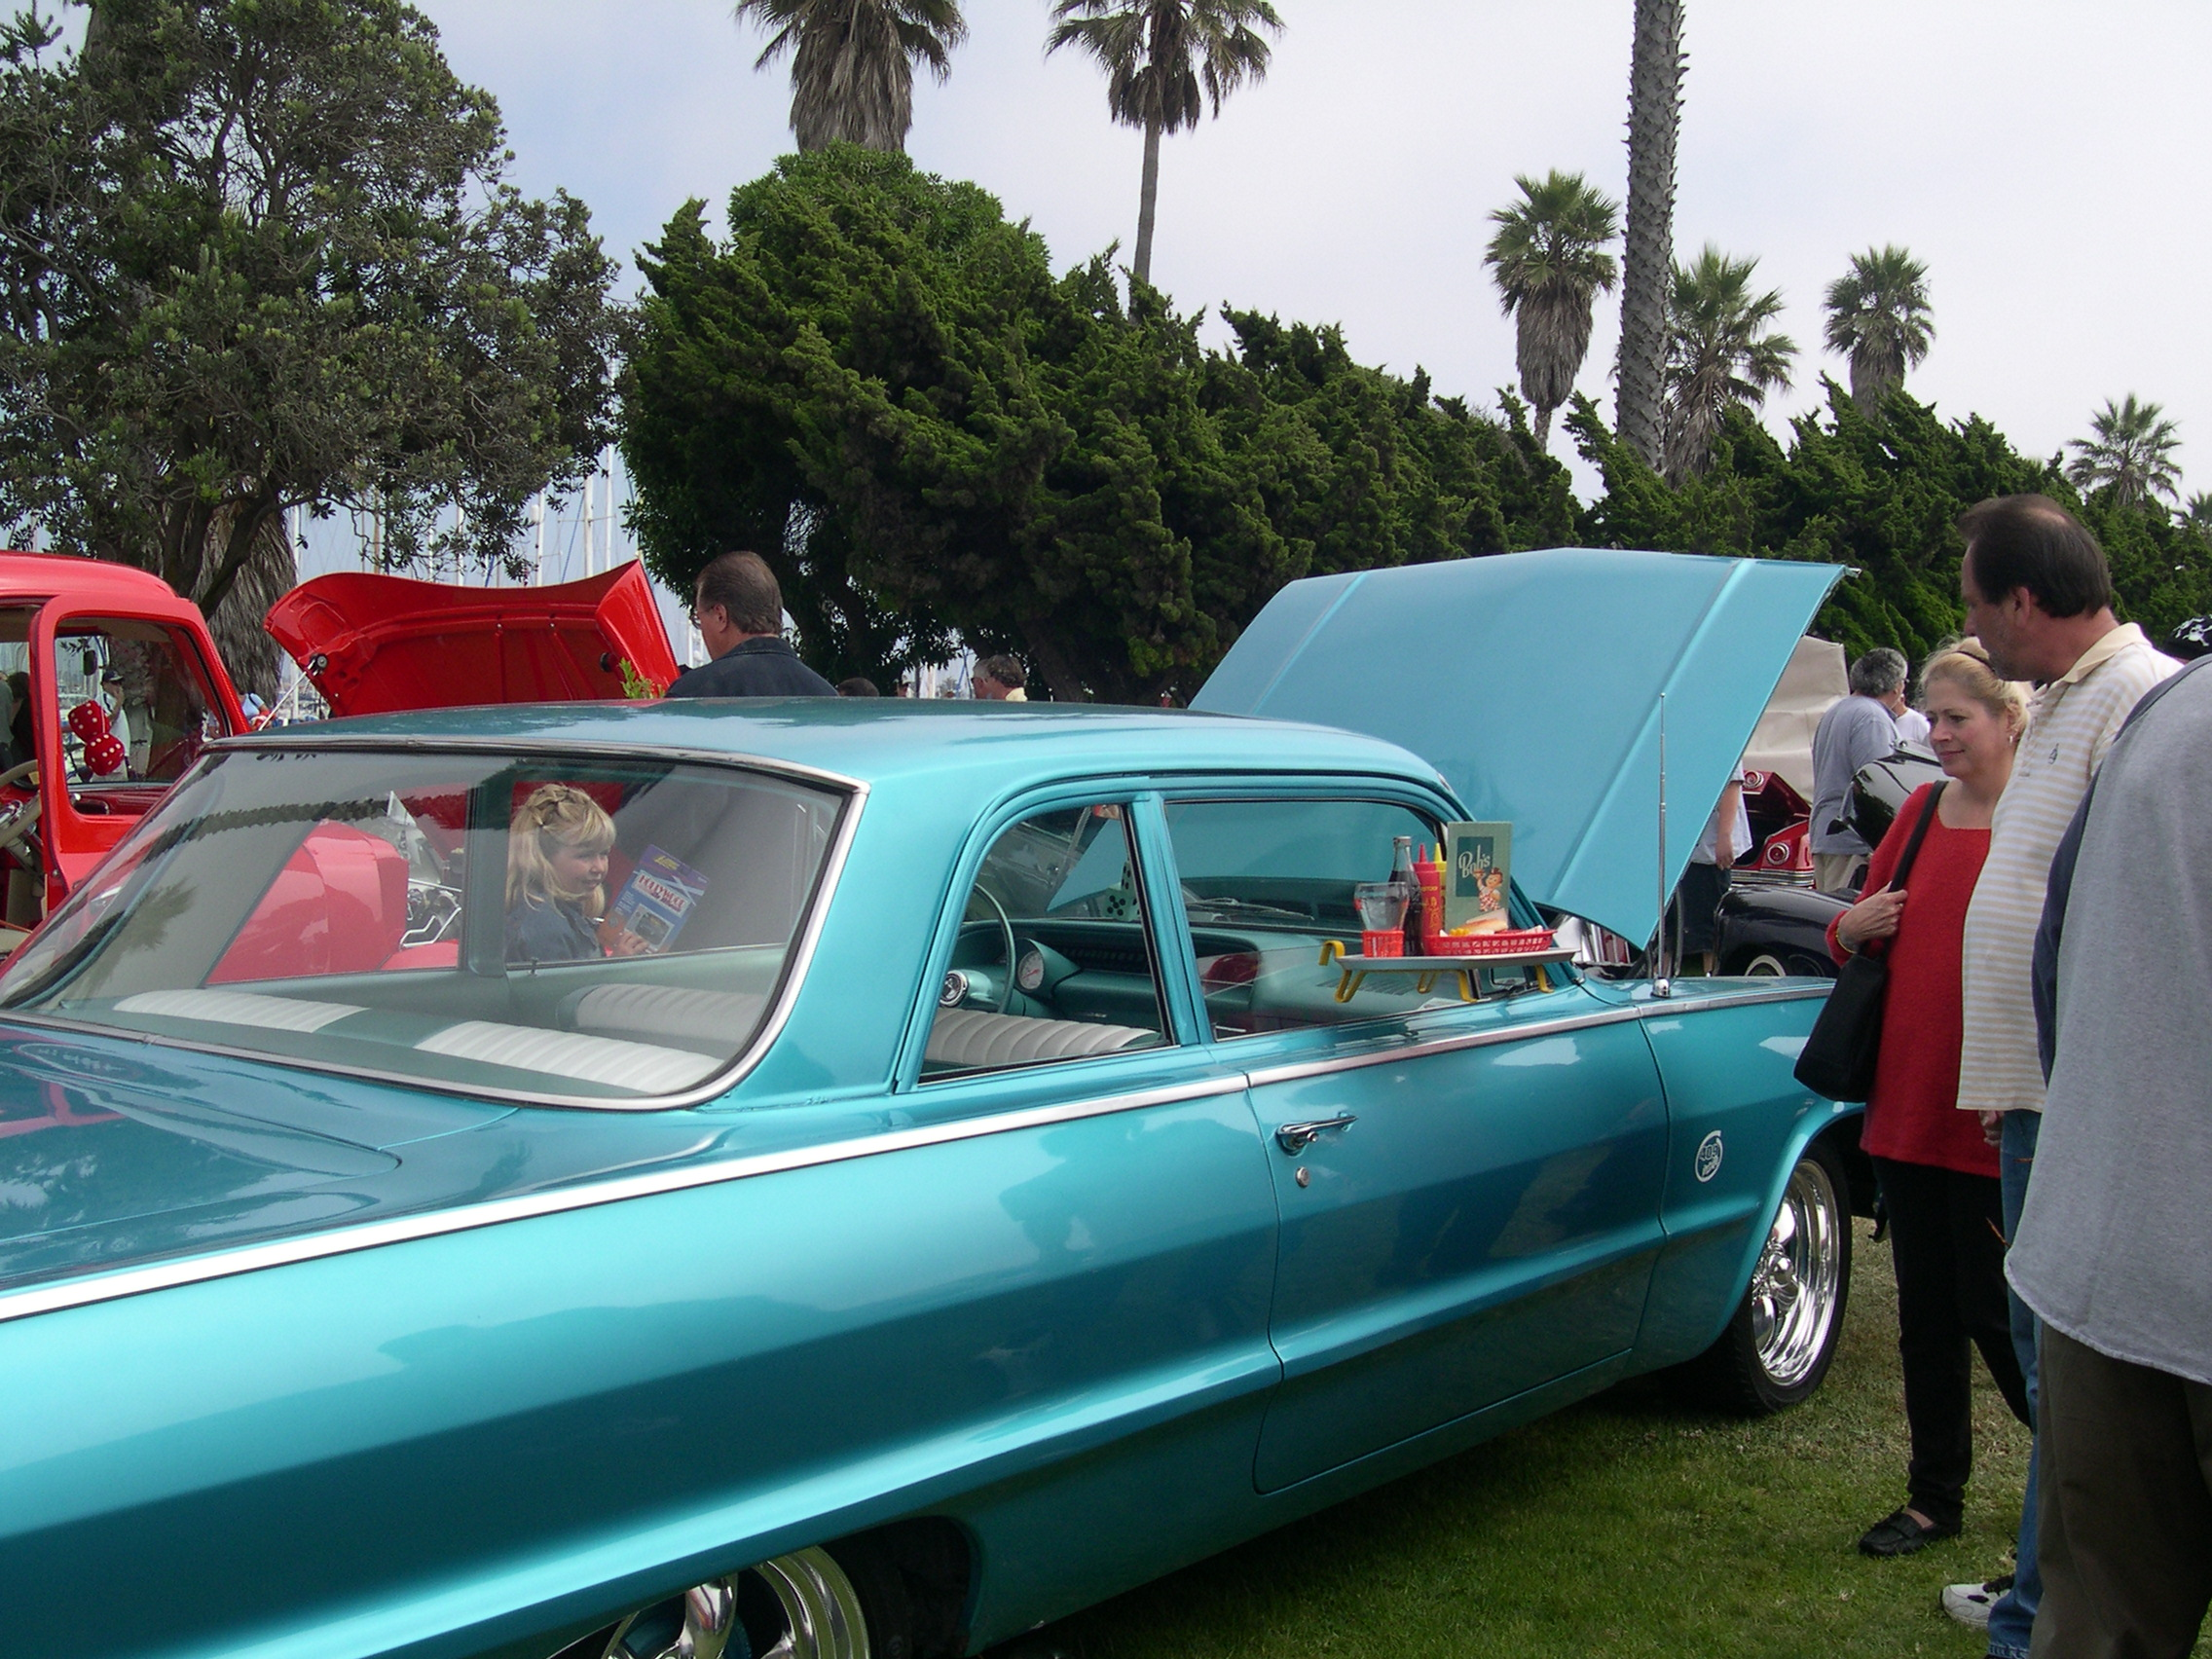 A car show is among Father's Day activities in California